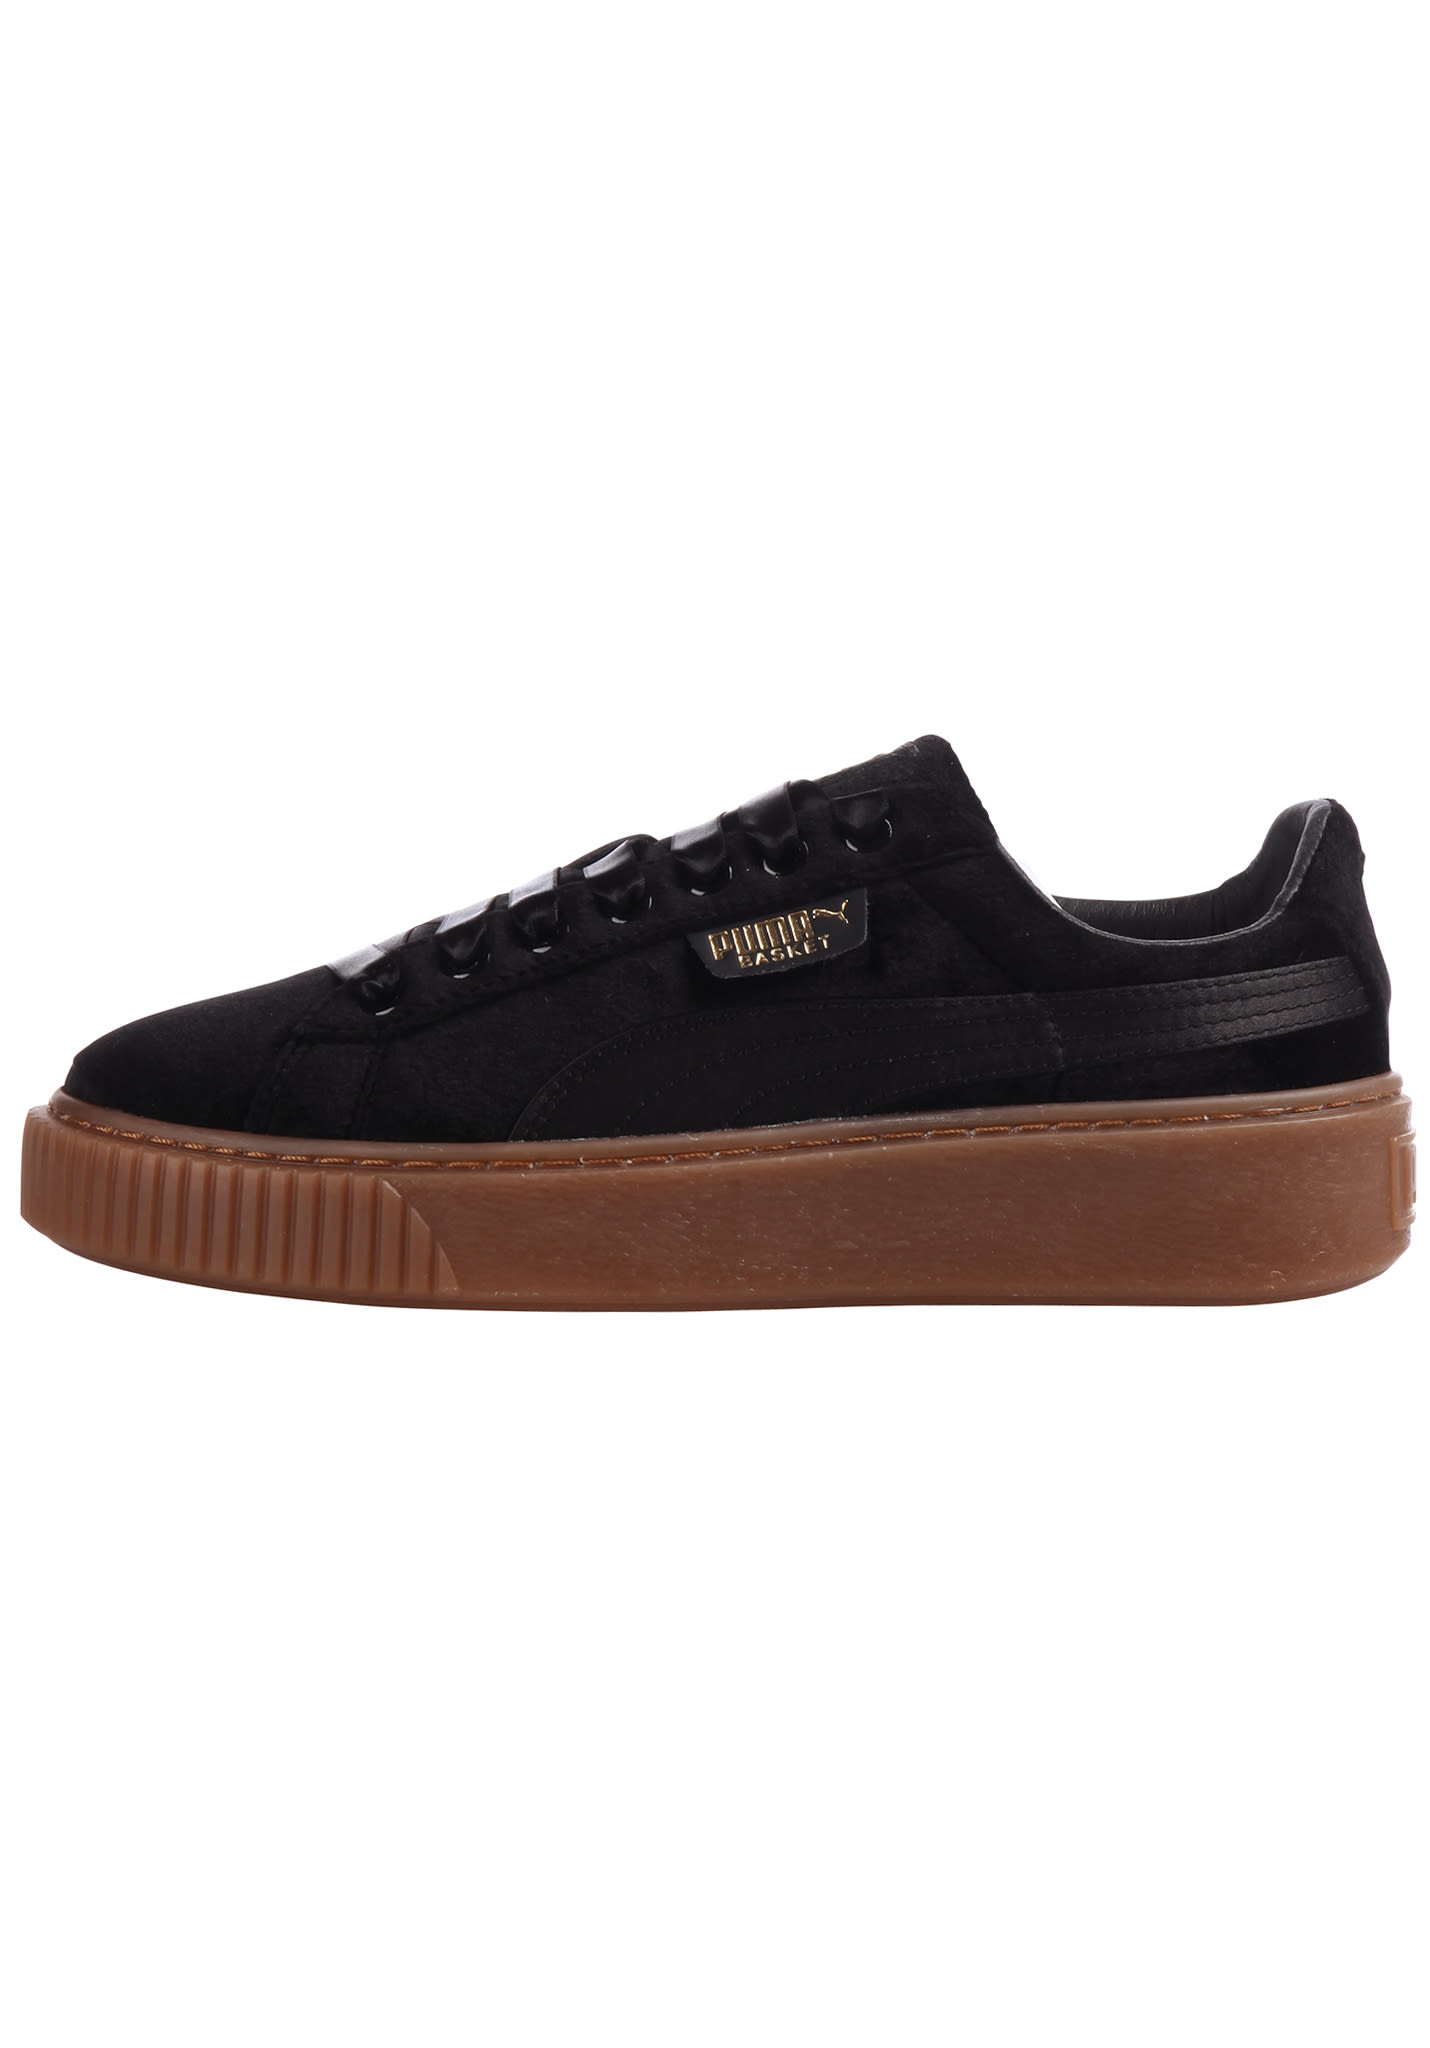 bcd377b8bd93 Puma Basket Platform VS - Sneakers for Women - Black - Planet Sports